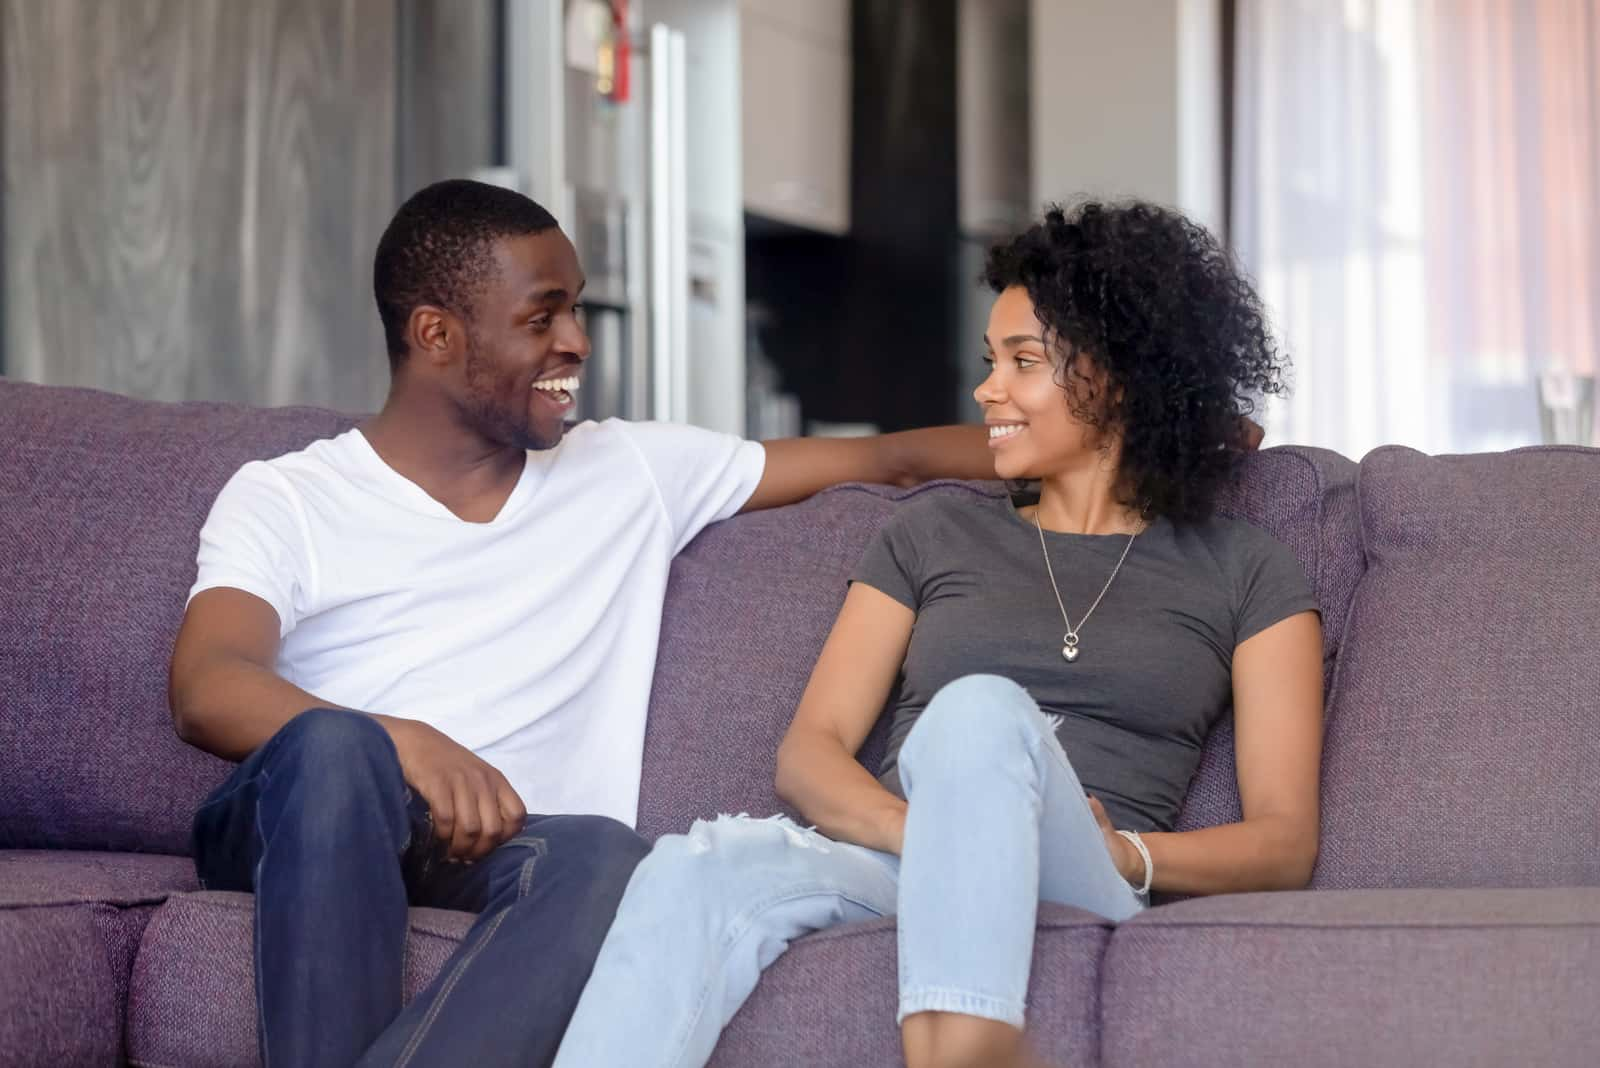 a man and a woman sit on the couch and talk